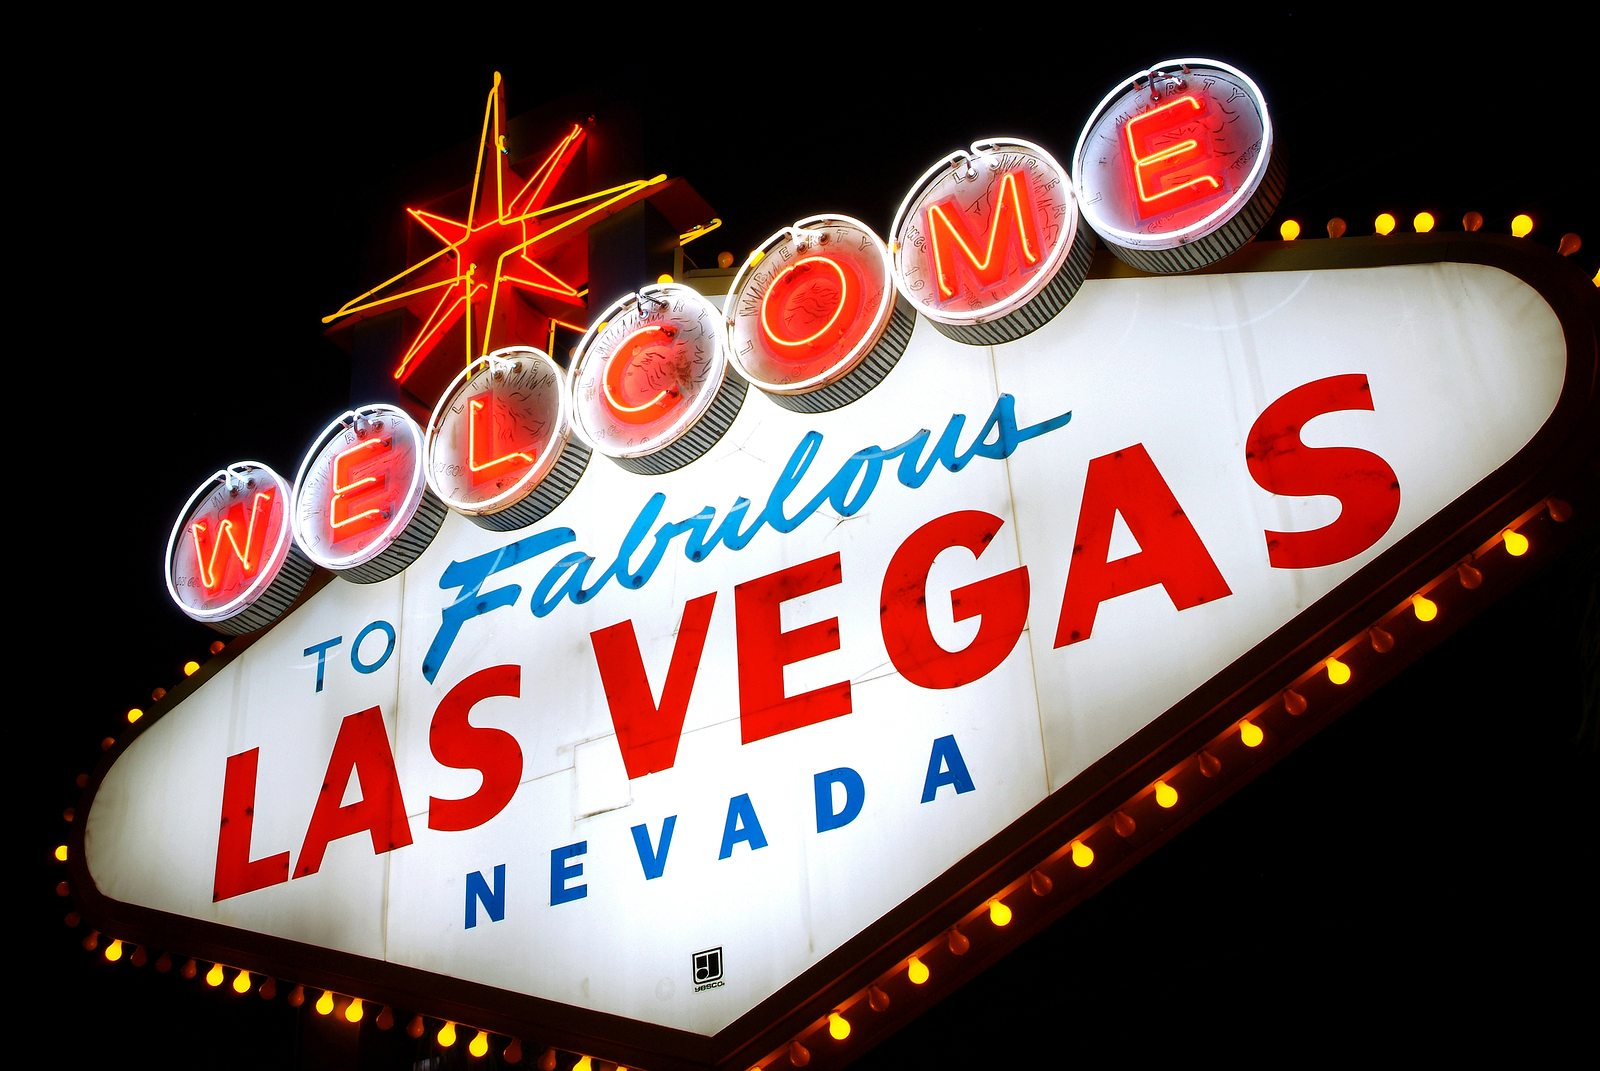 Classic Welcome to Fabulous Las Vegas neon sign, Nevada (USA)